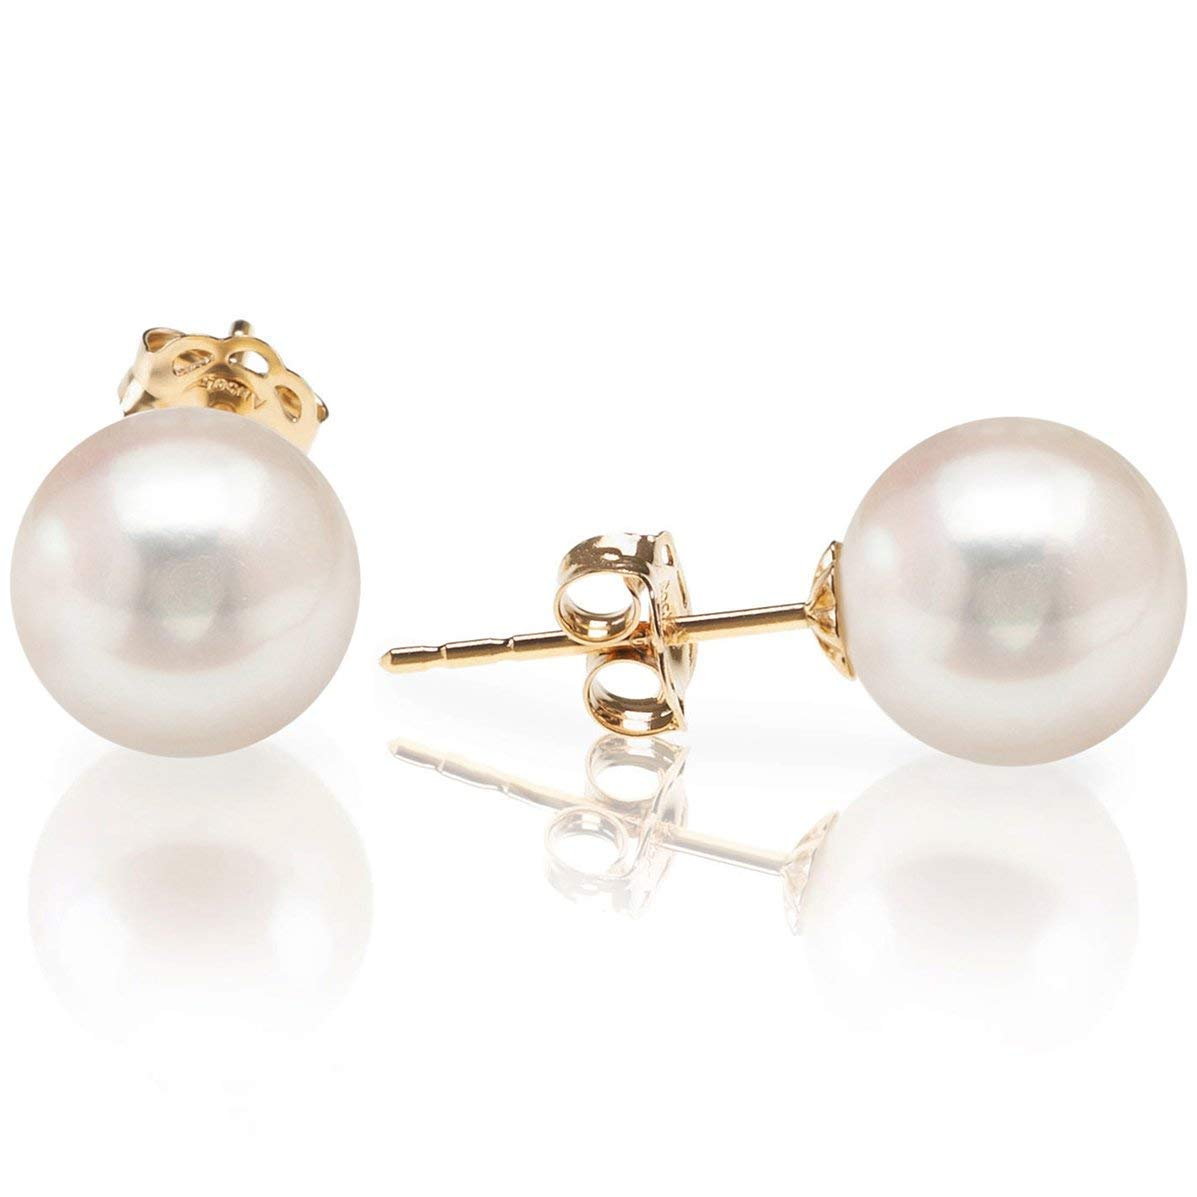 PAVOI 14K Yellow Gold AAA+ Handpicked Round Freshwater Cultured White Pearl Earring | Pearl Earrings for Women - 6mm